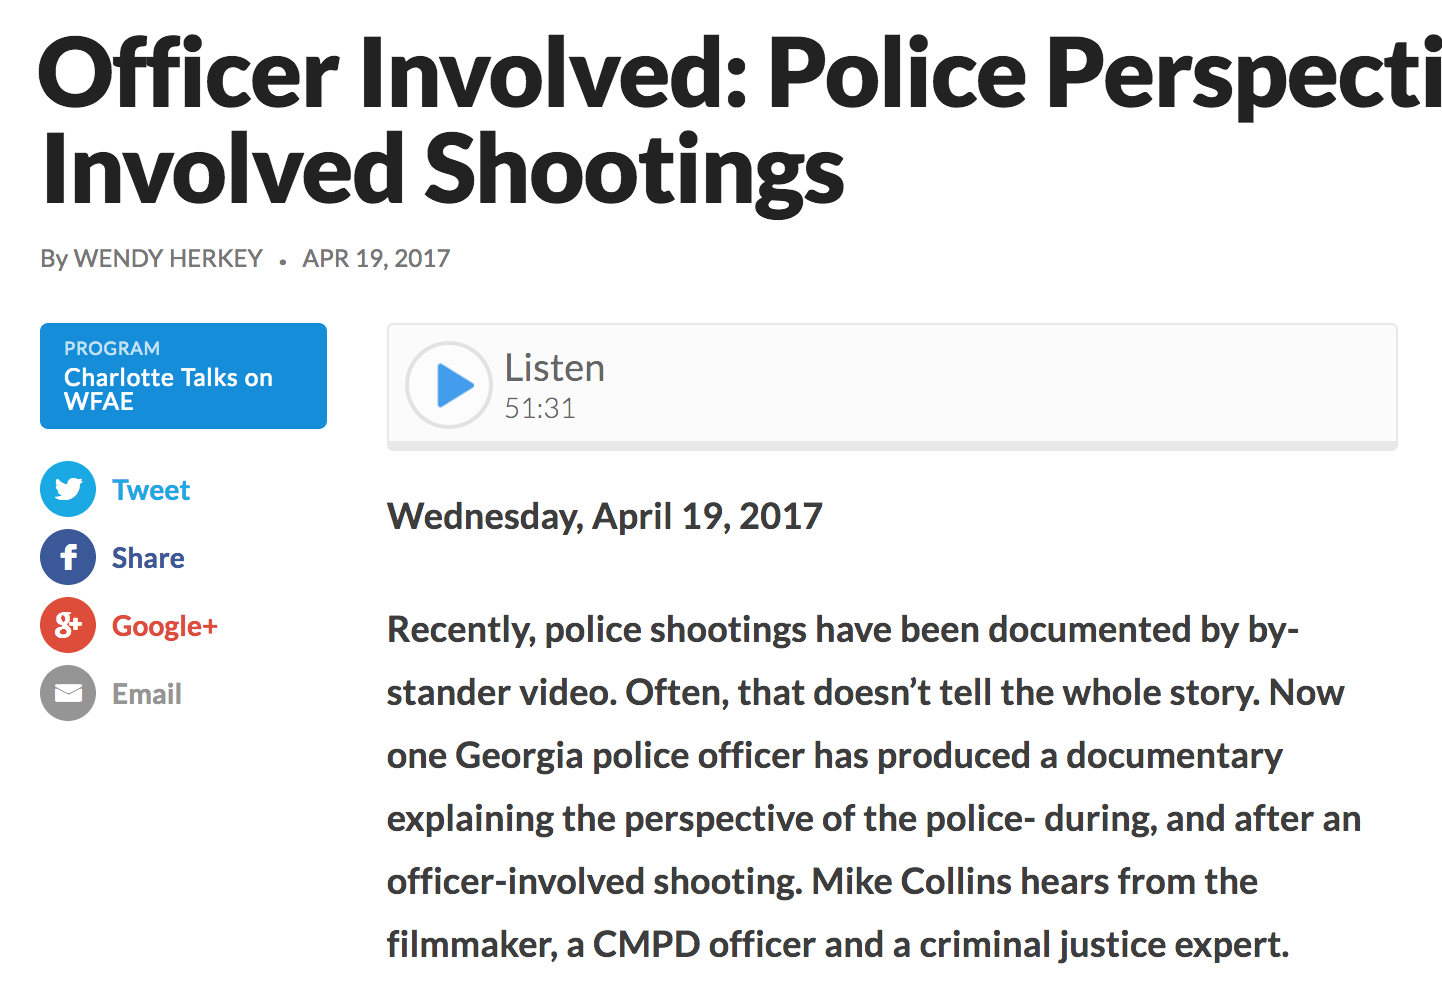 Officer Involved: Police Perspectives on Officer Involved Shootings   WFAE 90.7